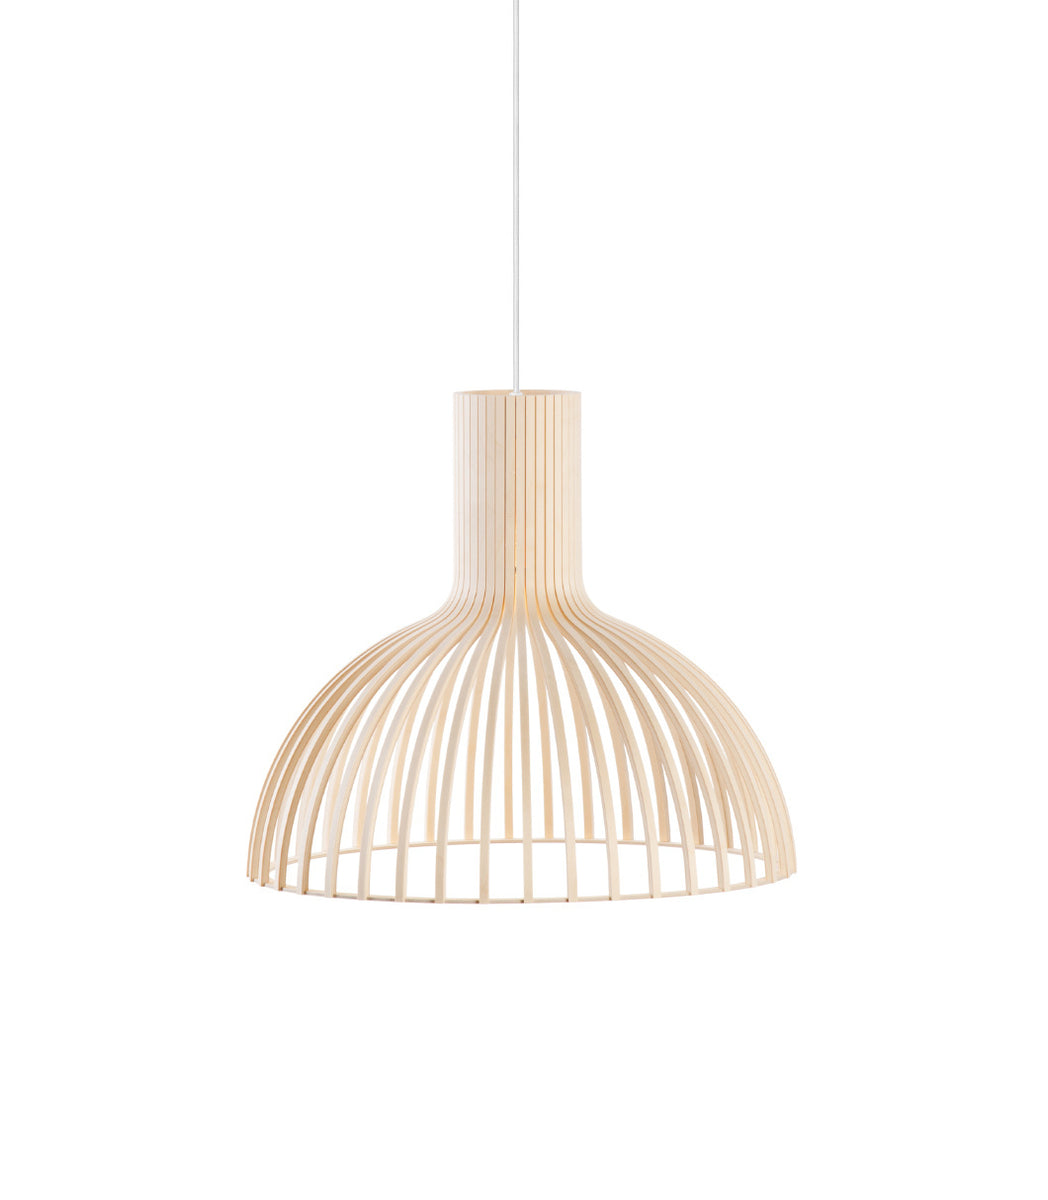 High end ceiling pendant Victo 4251 Natural Birch 3